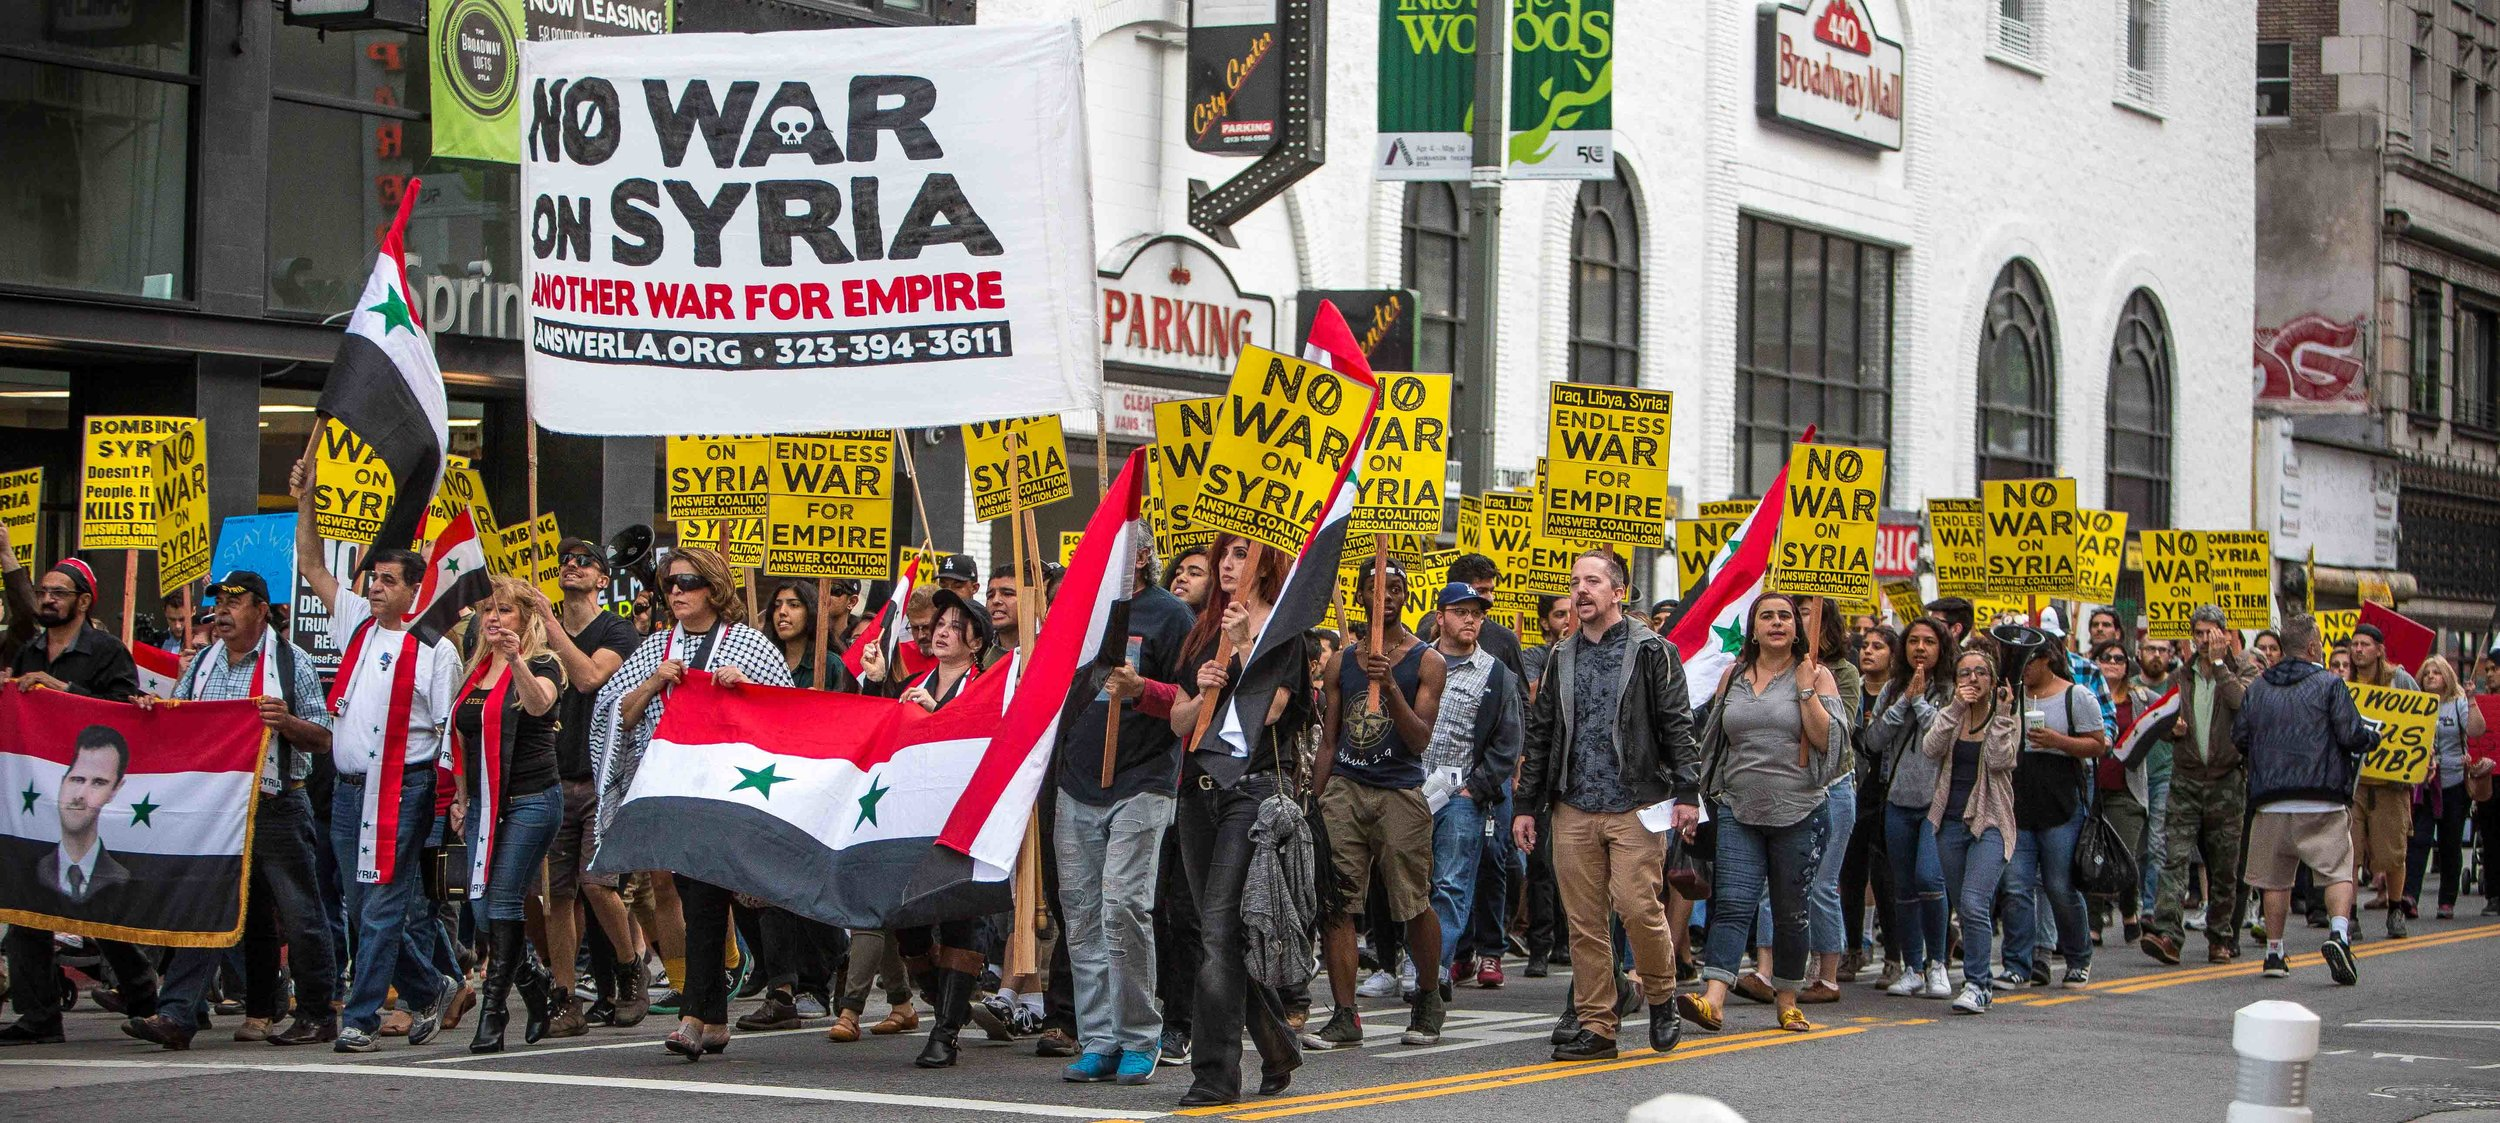 An estimated 300 protestors gathered at Pershing Square and marched to City Hall. Protestors across the US demonstrated against the airstrikes in Syria ordered by US President Donald Trump. Los Angees, California, April 8, 2017. Daniel Bowyer